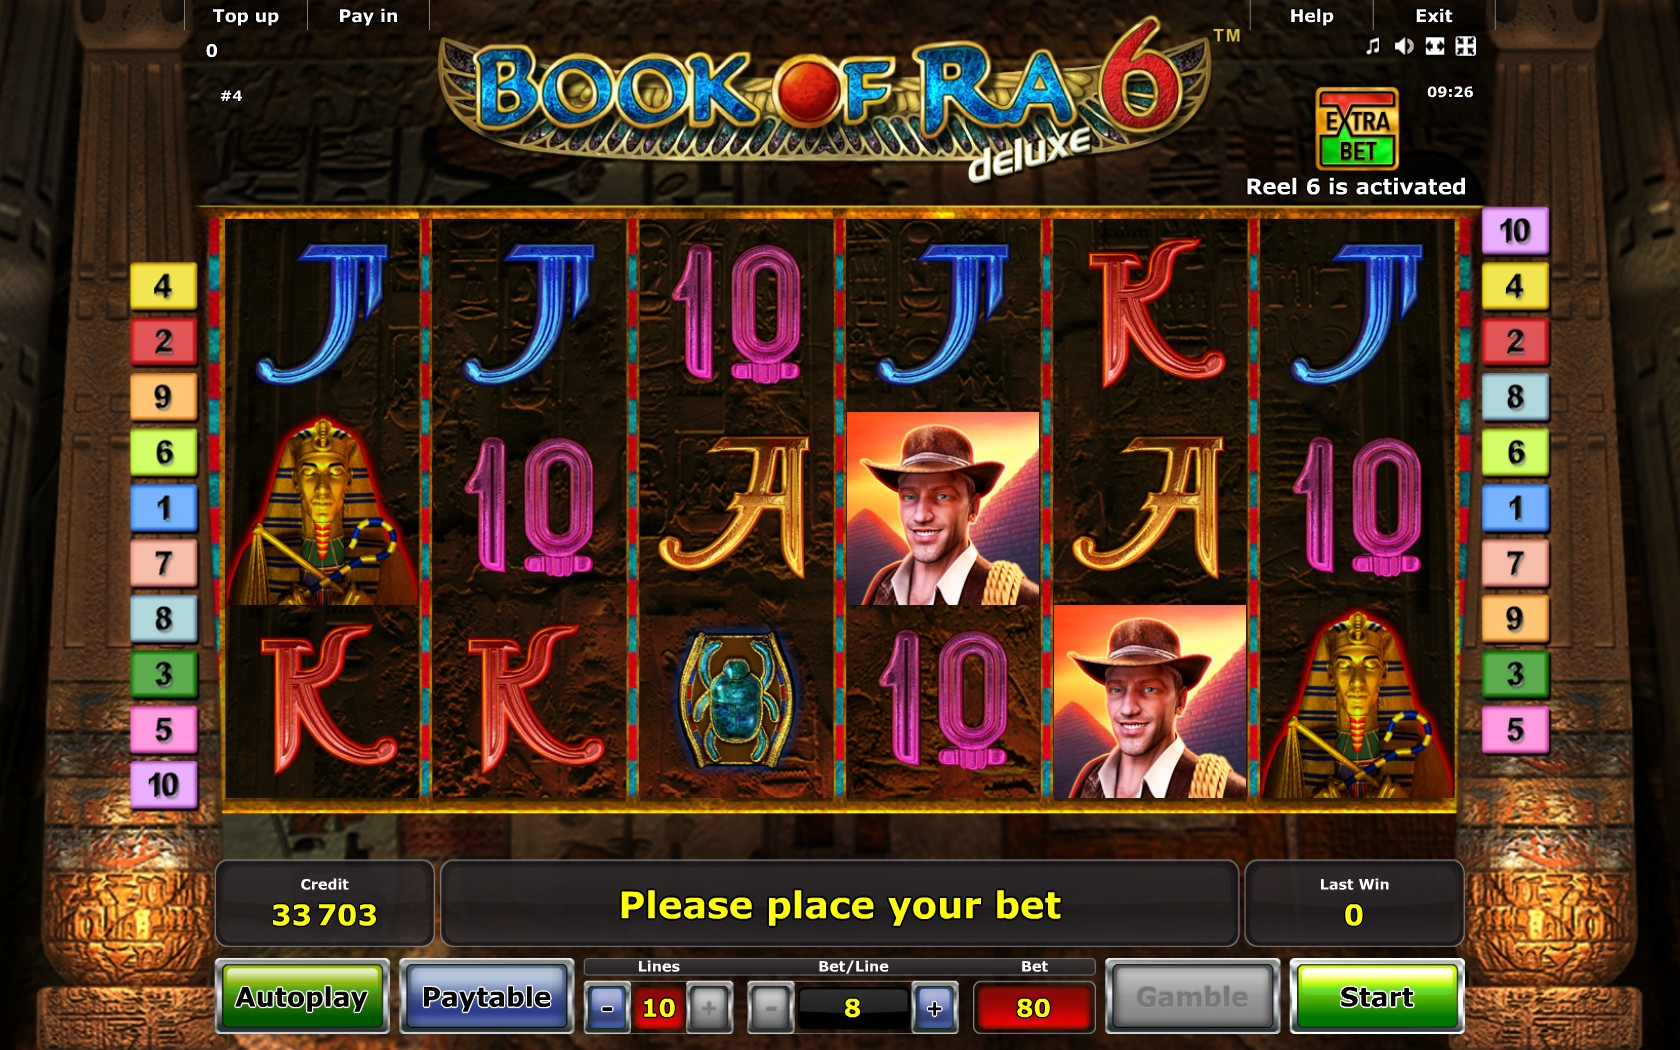 casino online games bookofra